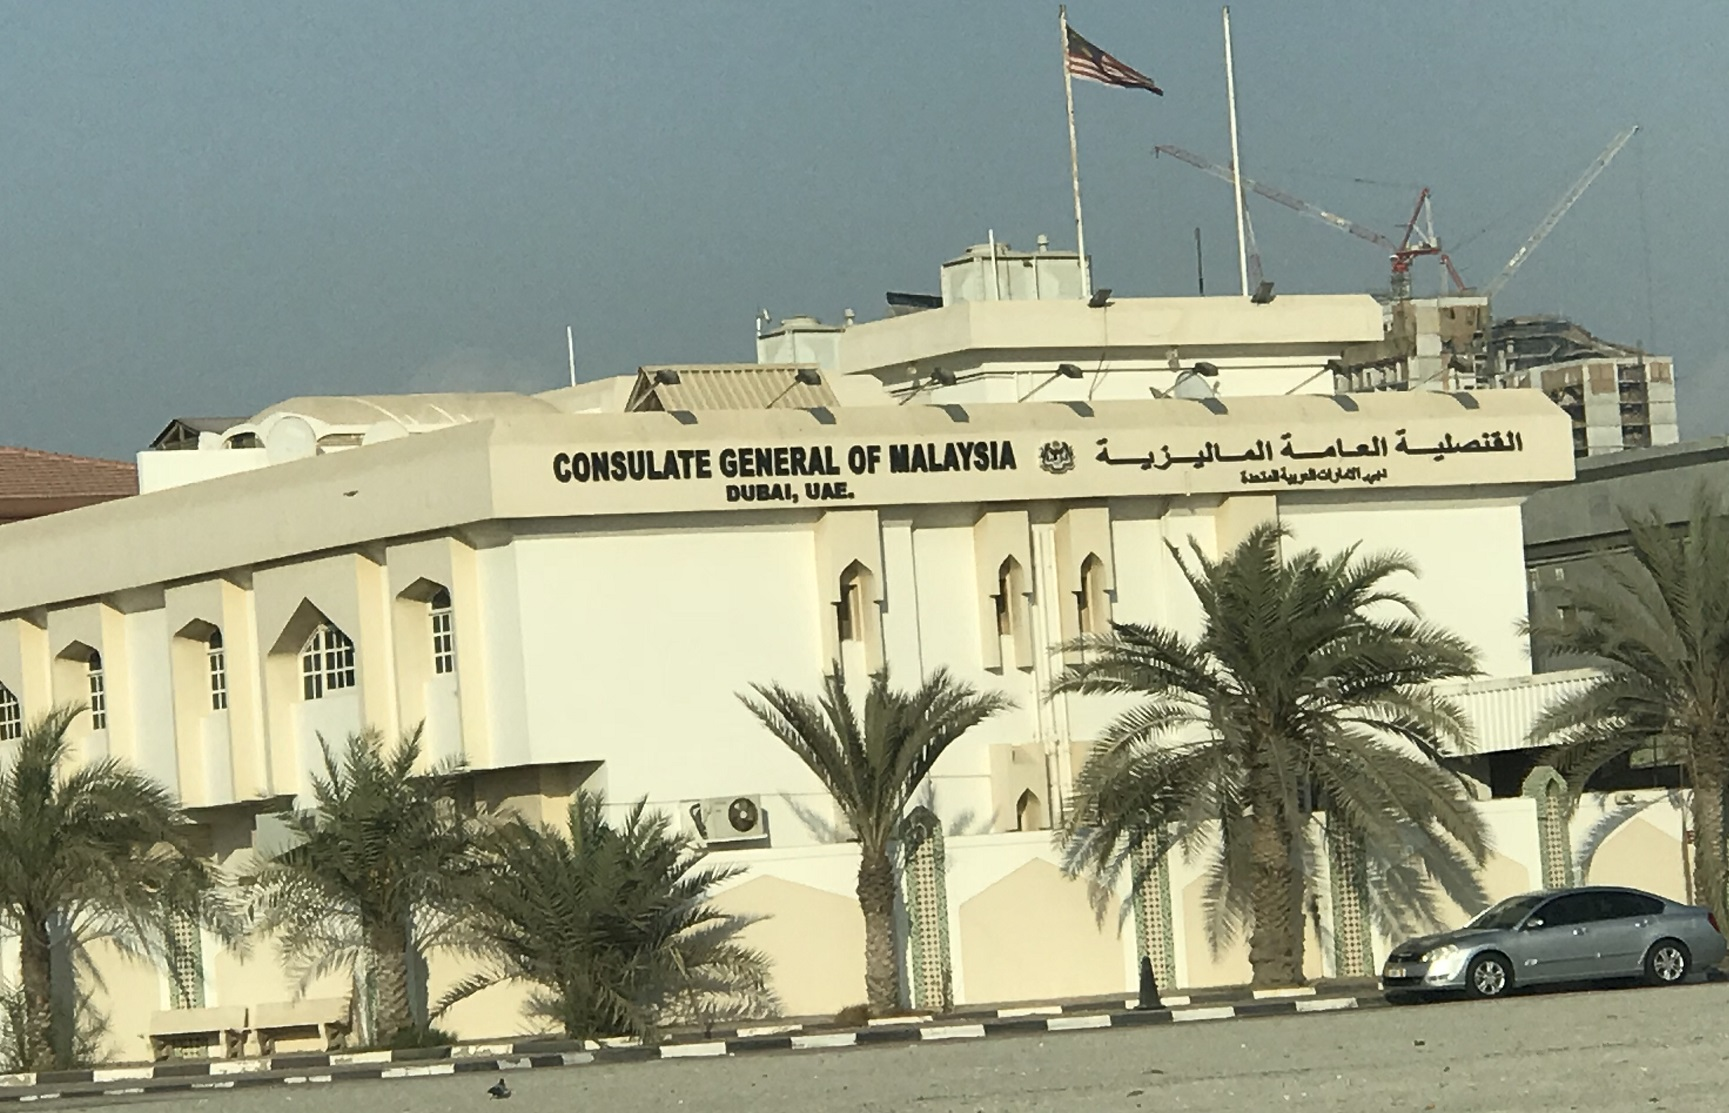 Malaysian Consulate General in Dubai, UAE